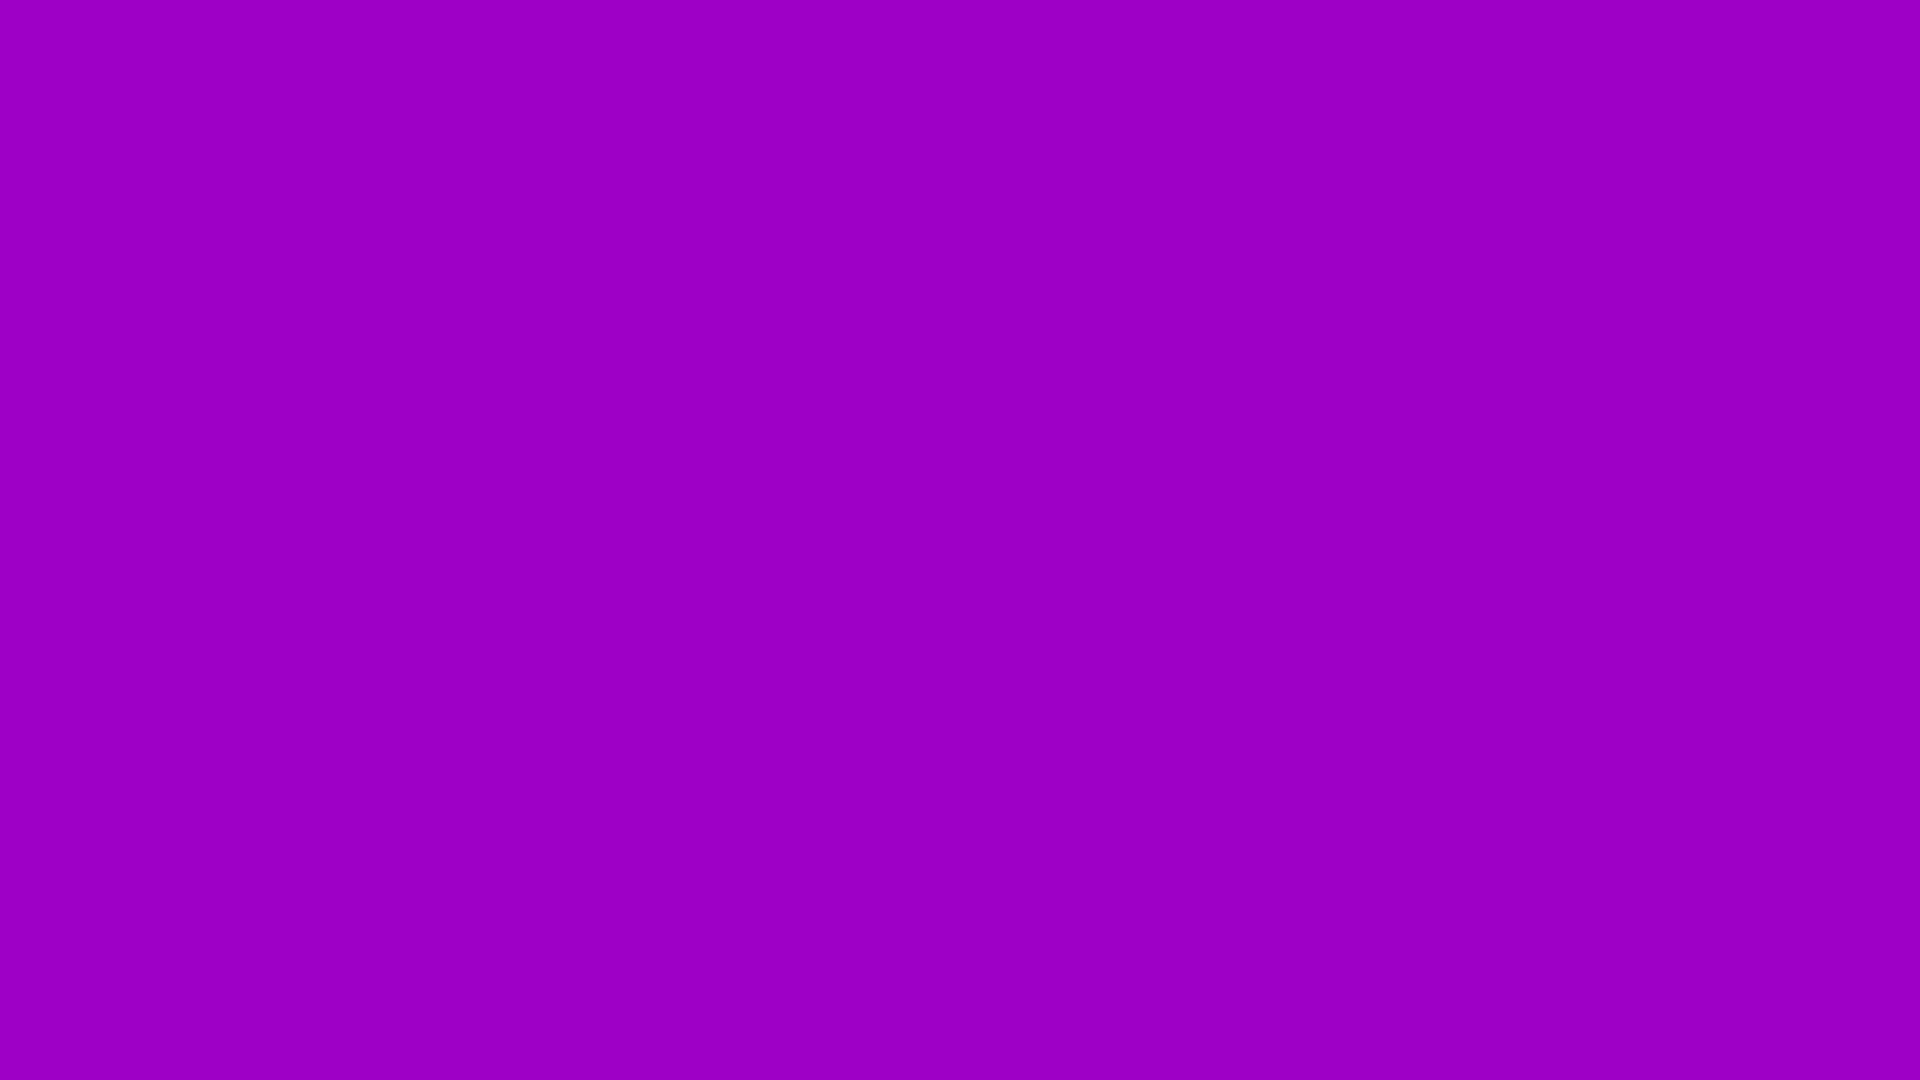 1920x1080 Purple Munsell Solid Color Background